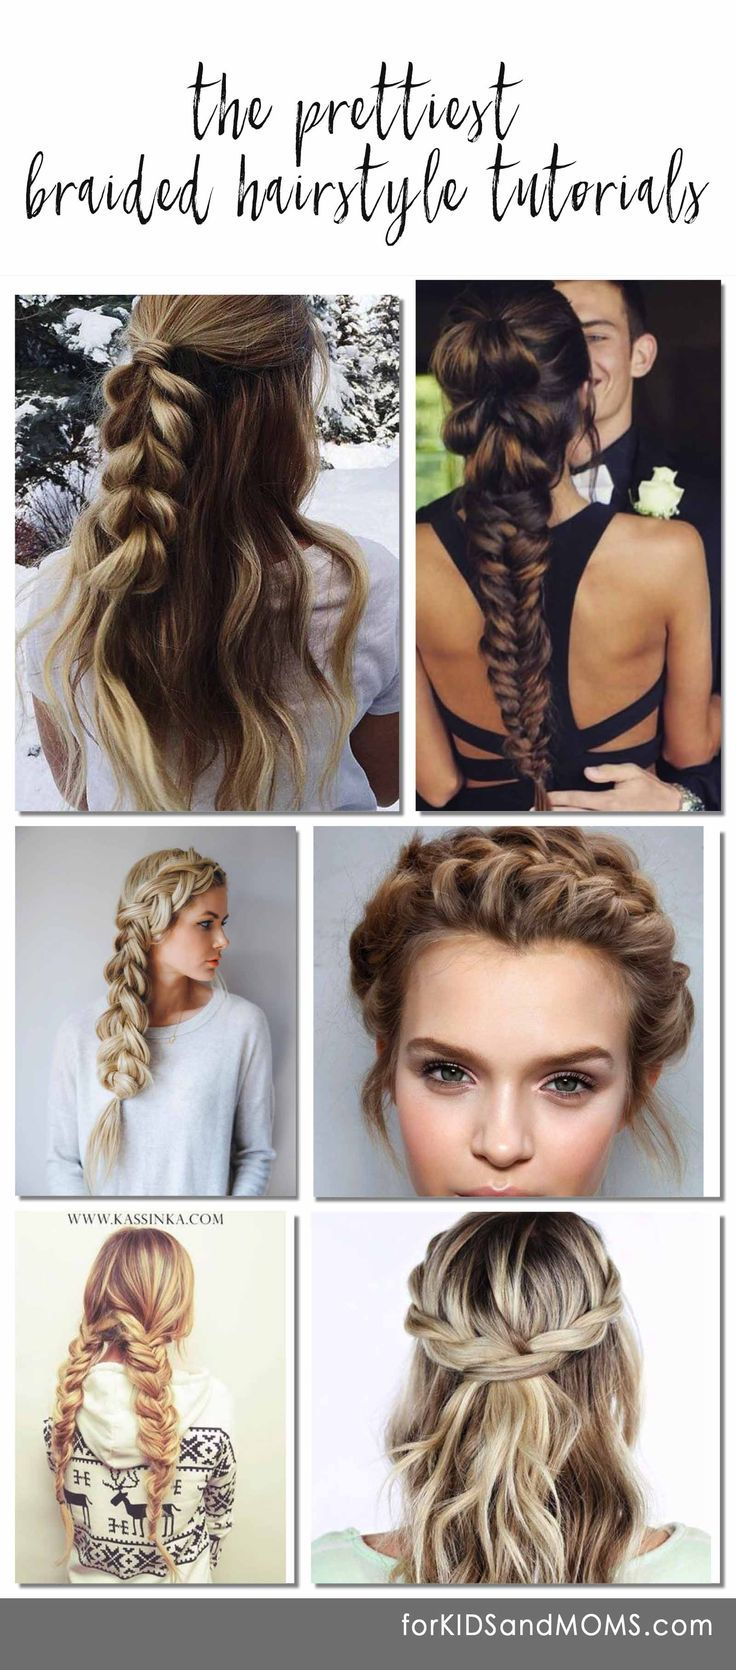 Braided Hairstyles – Pinterest Most Pinned  Easy braided